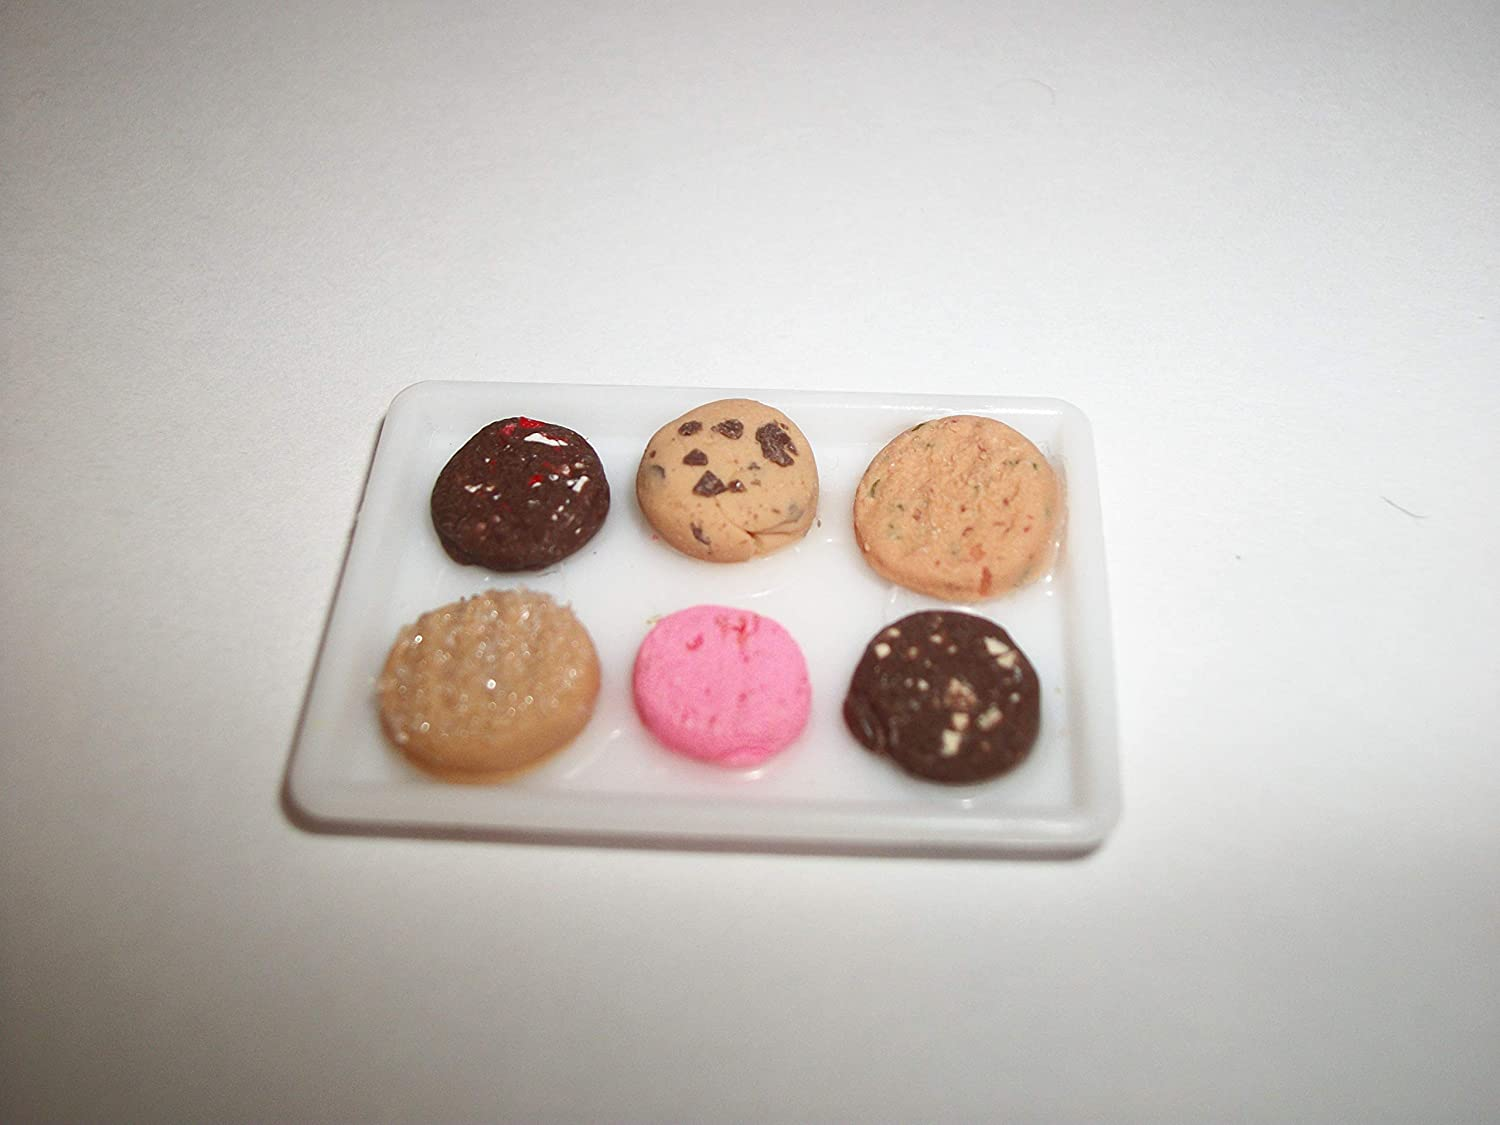 Dollhouse Miniature Cookies A152 Doll Fake Dessert Food